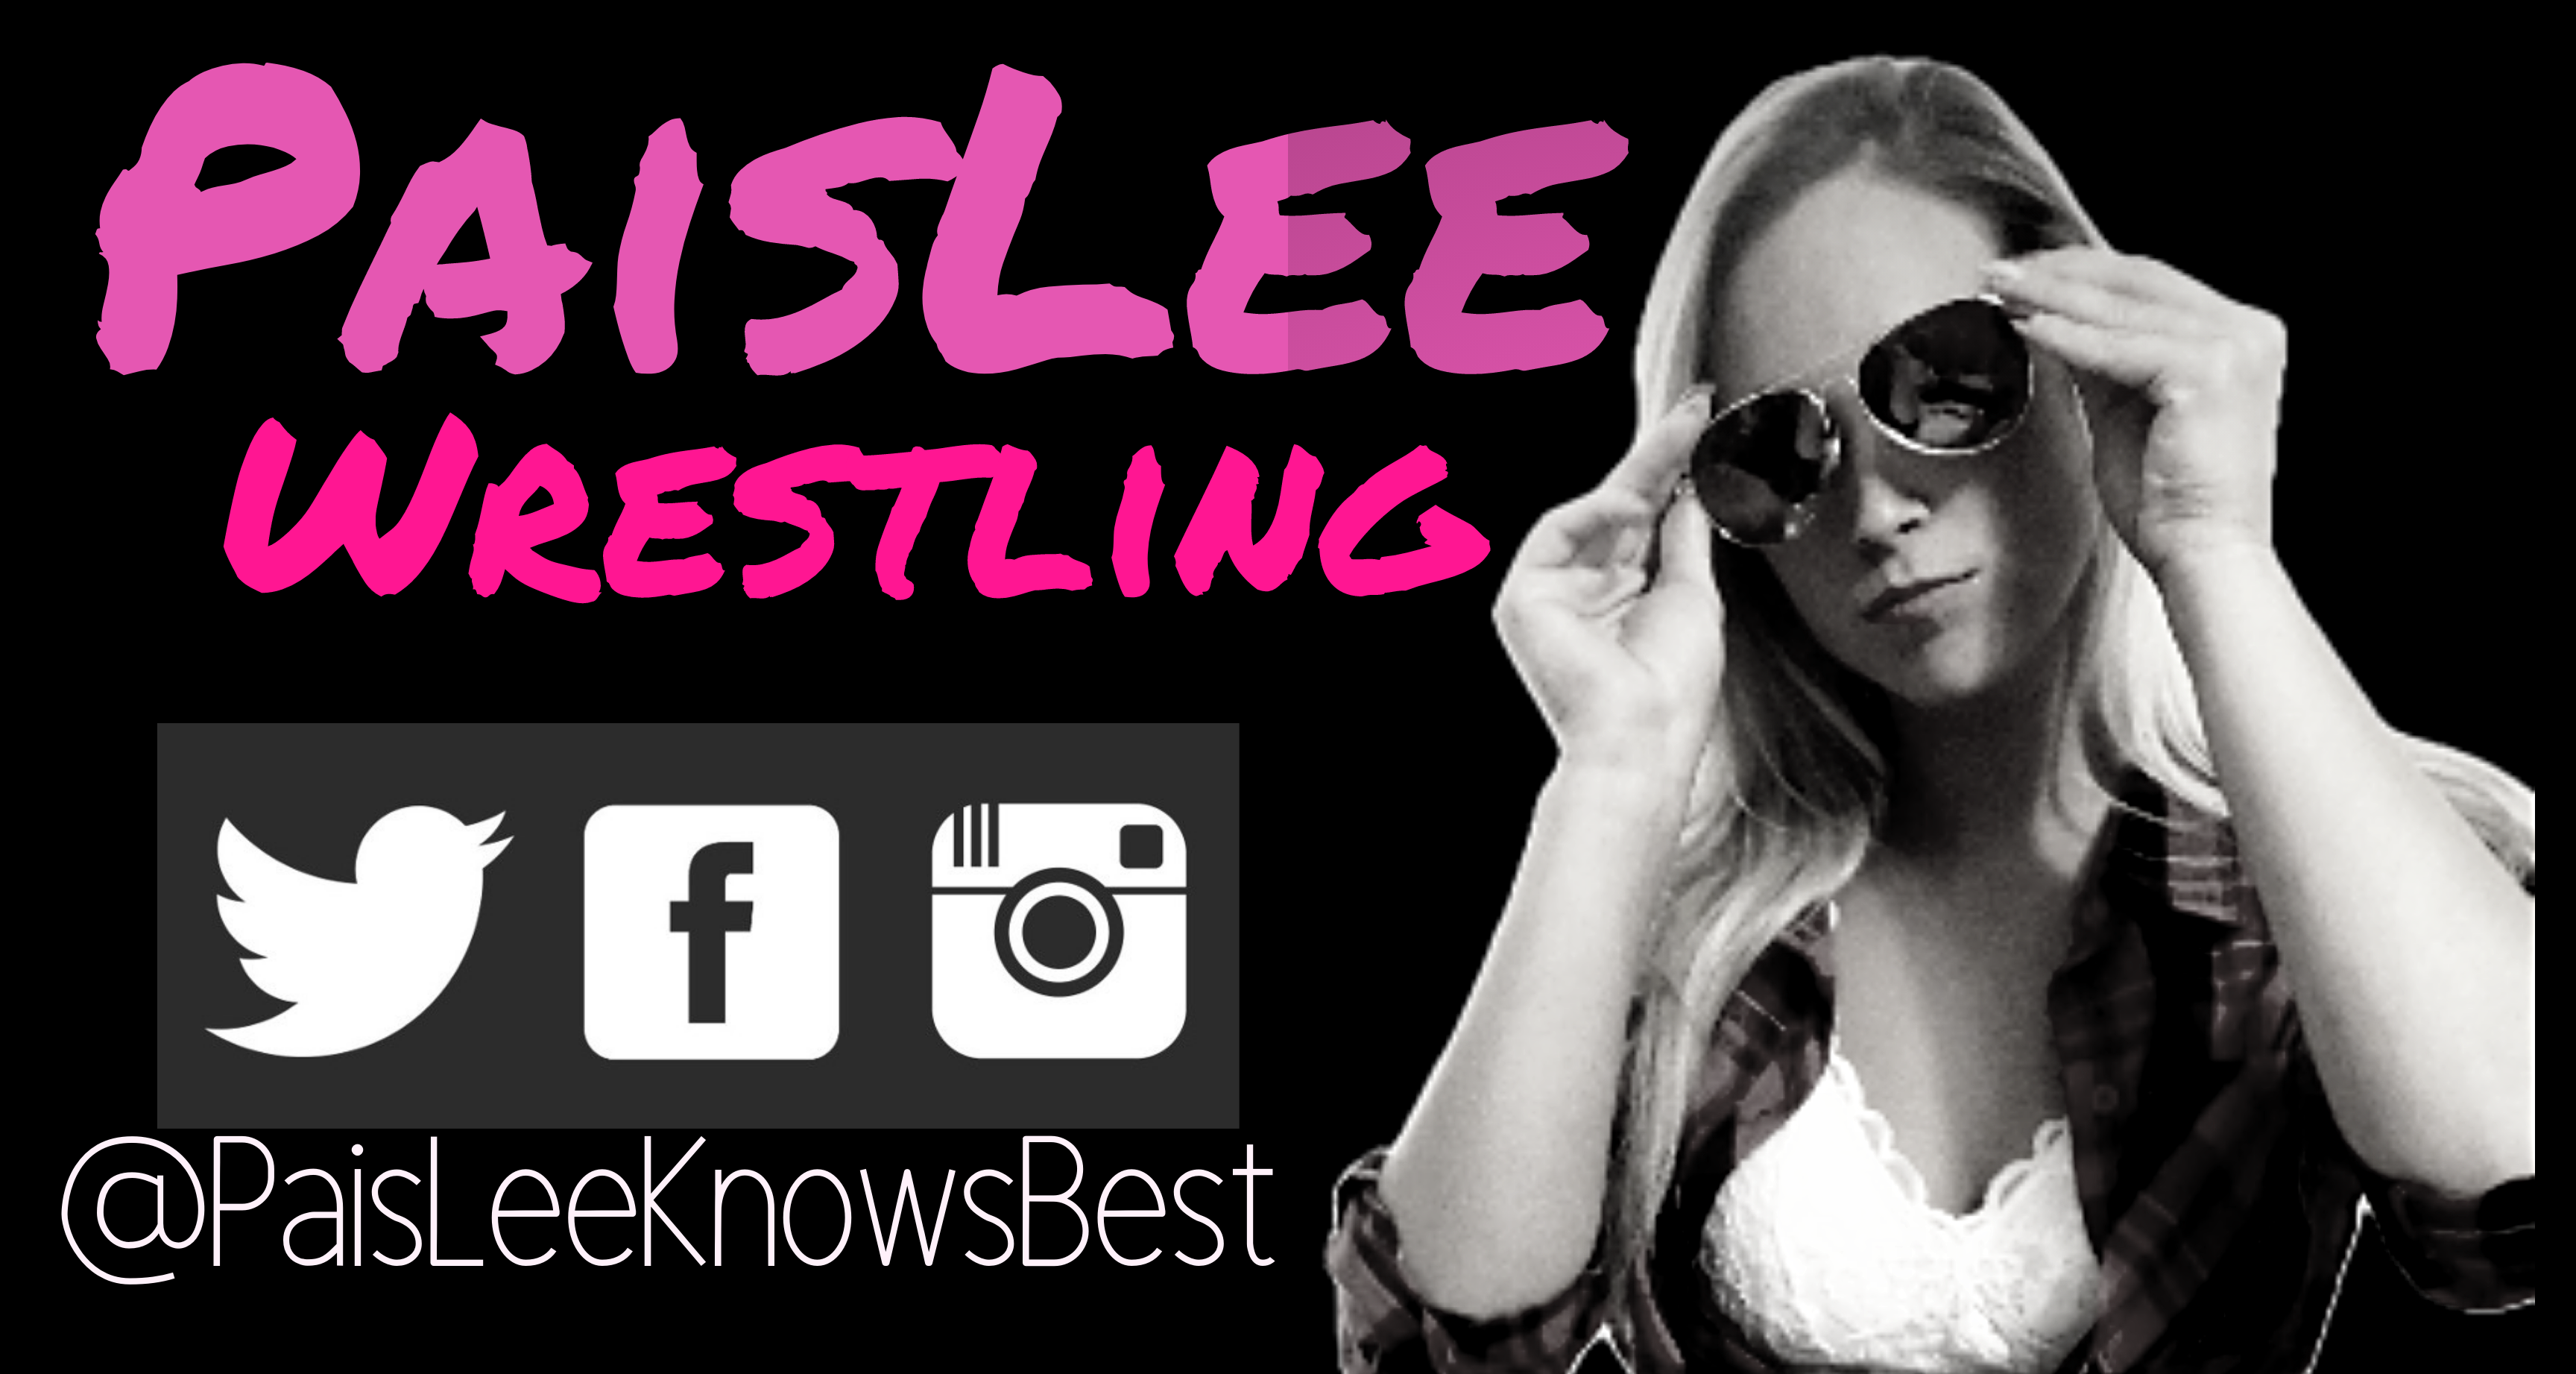 Paislee Ford Wrestling